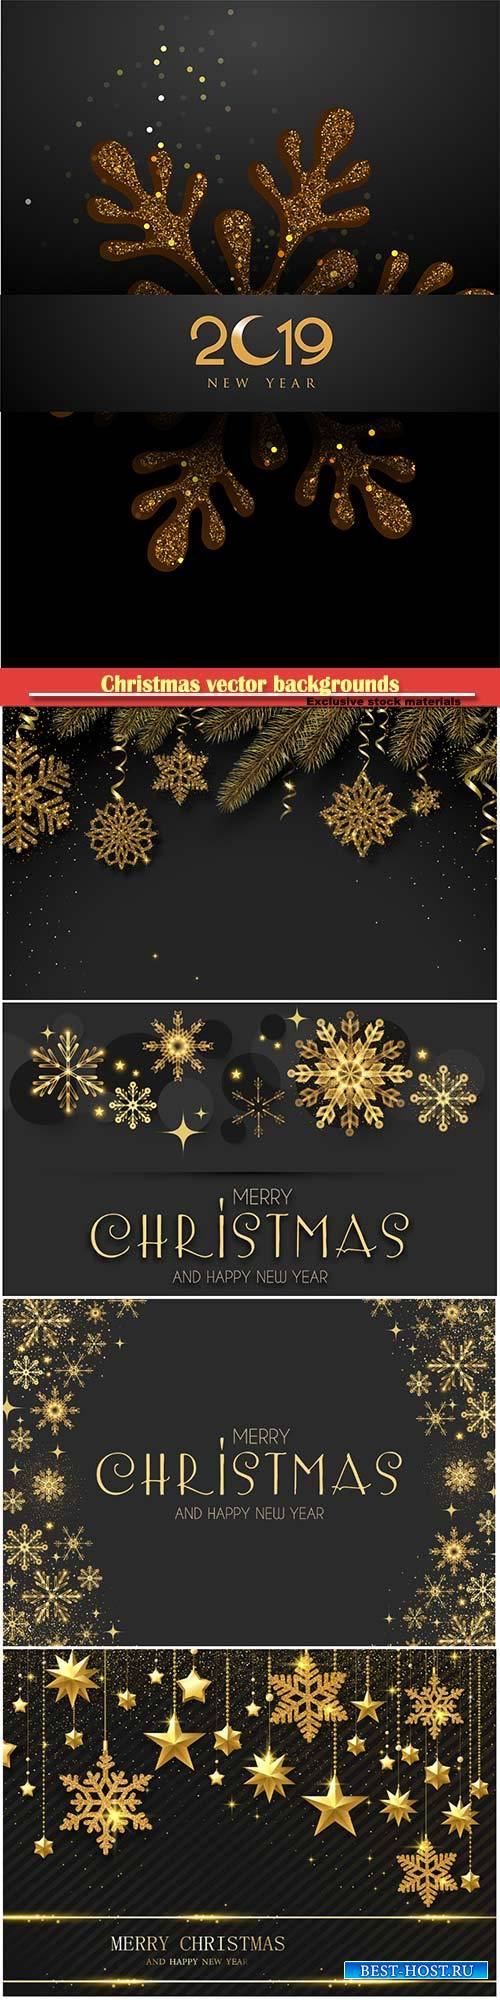 Christmas vector backgrounds with golden decor